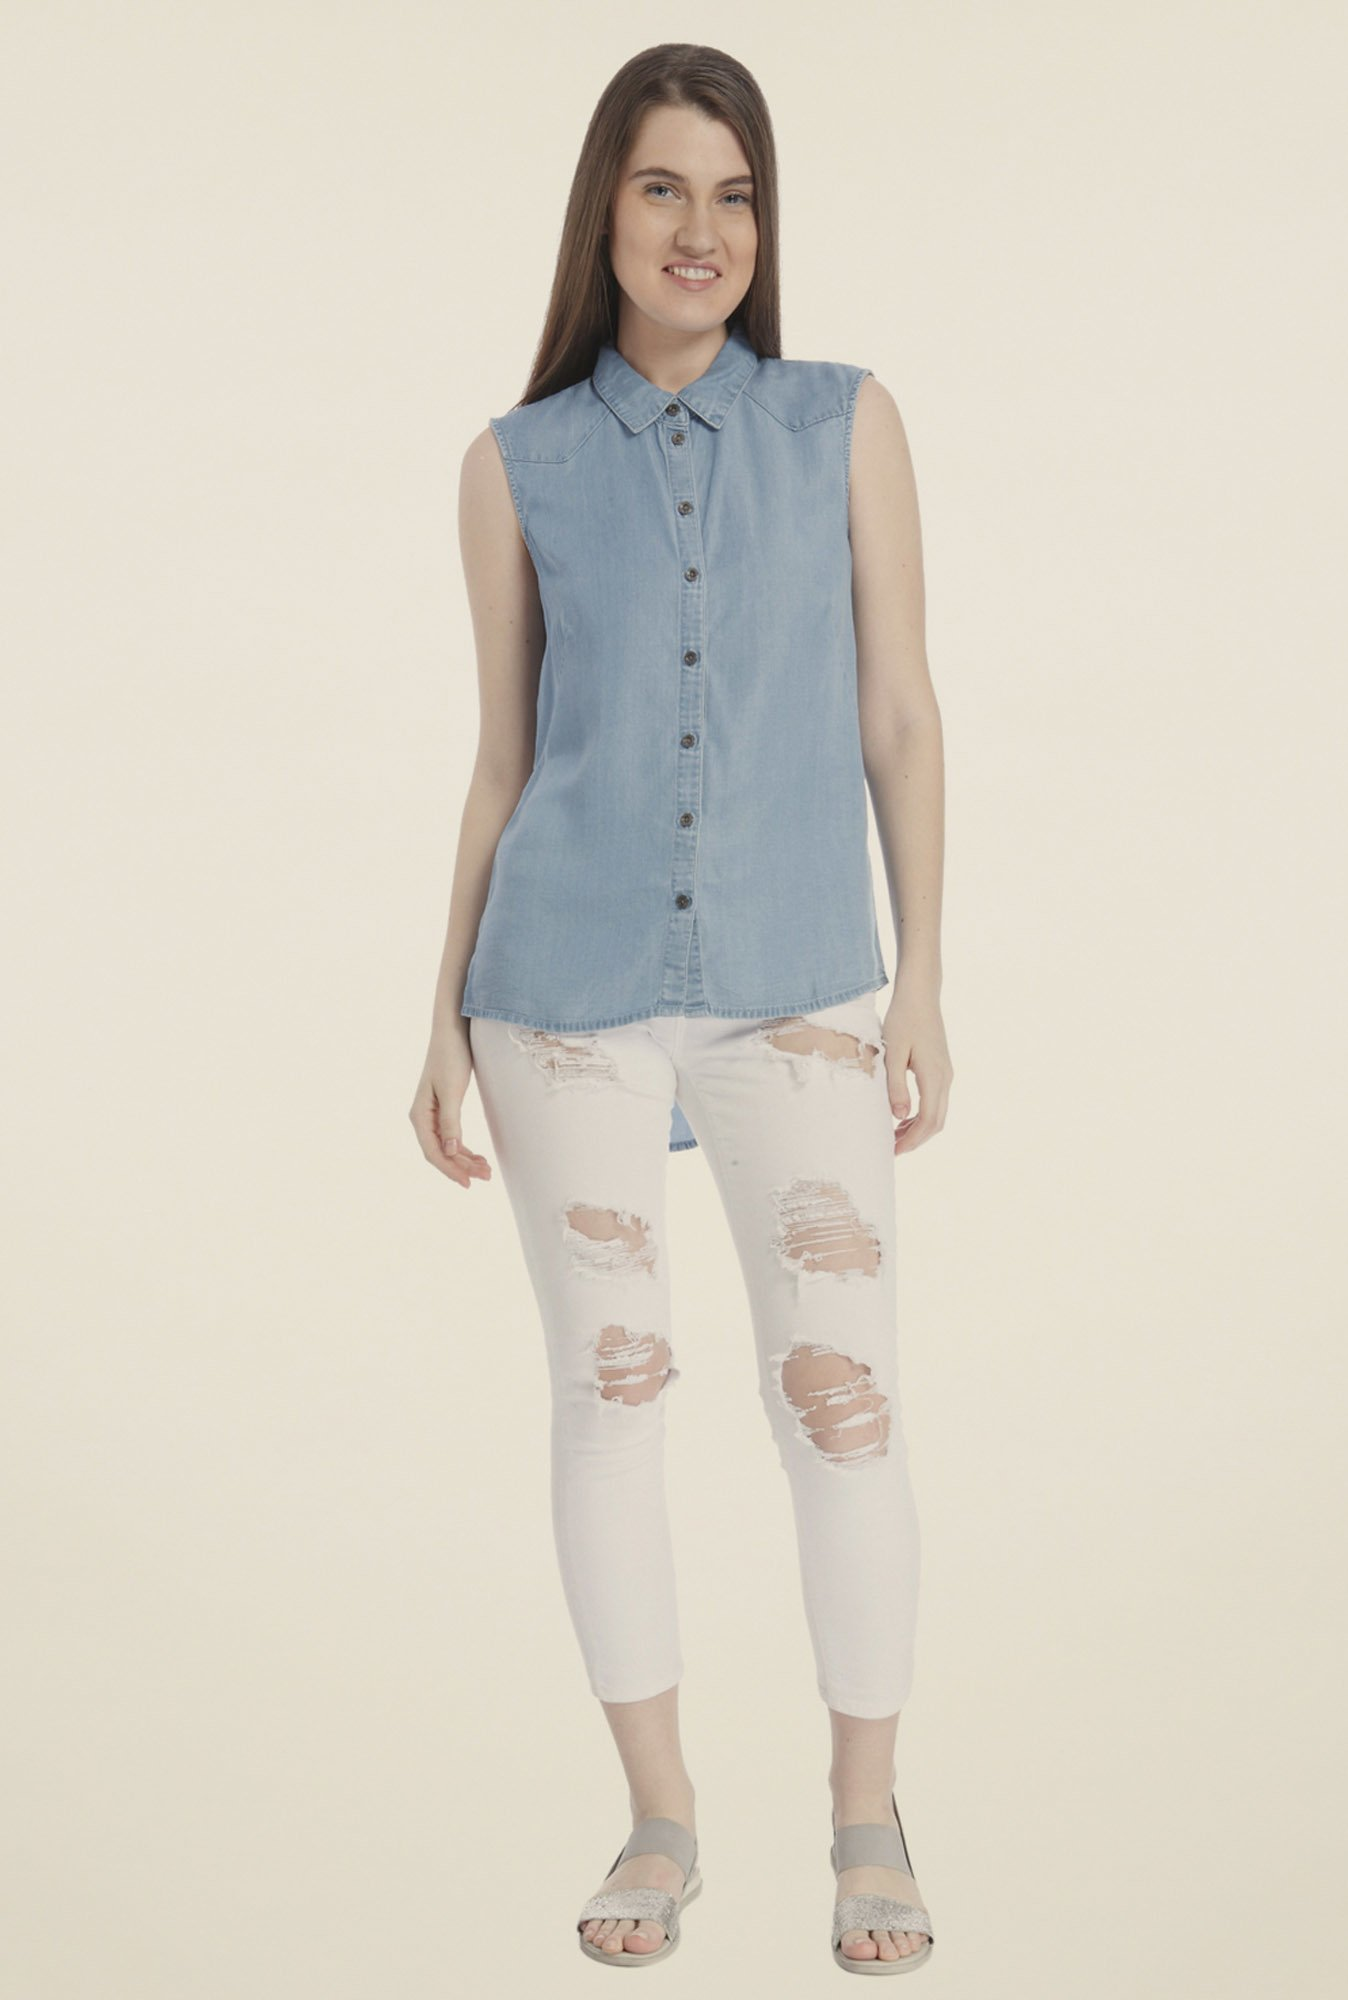 Vero Moda Blue Solid Shirt